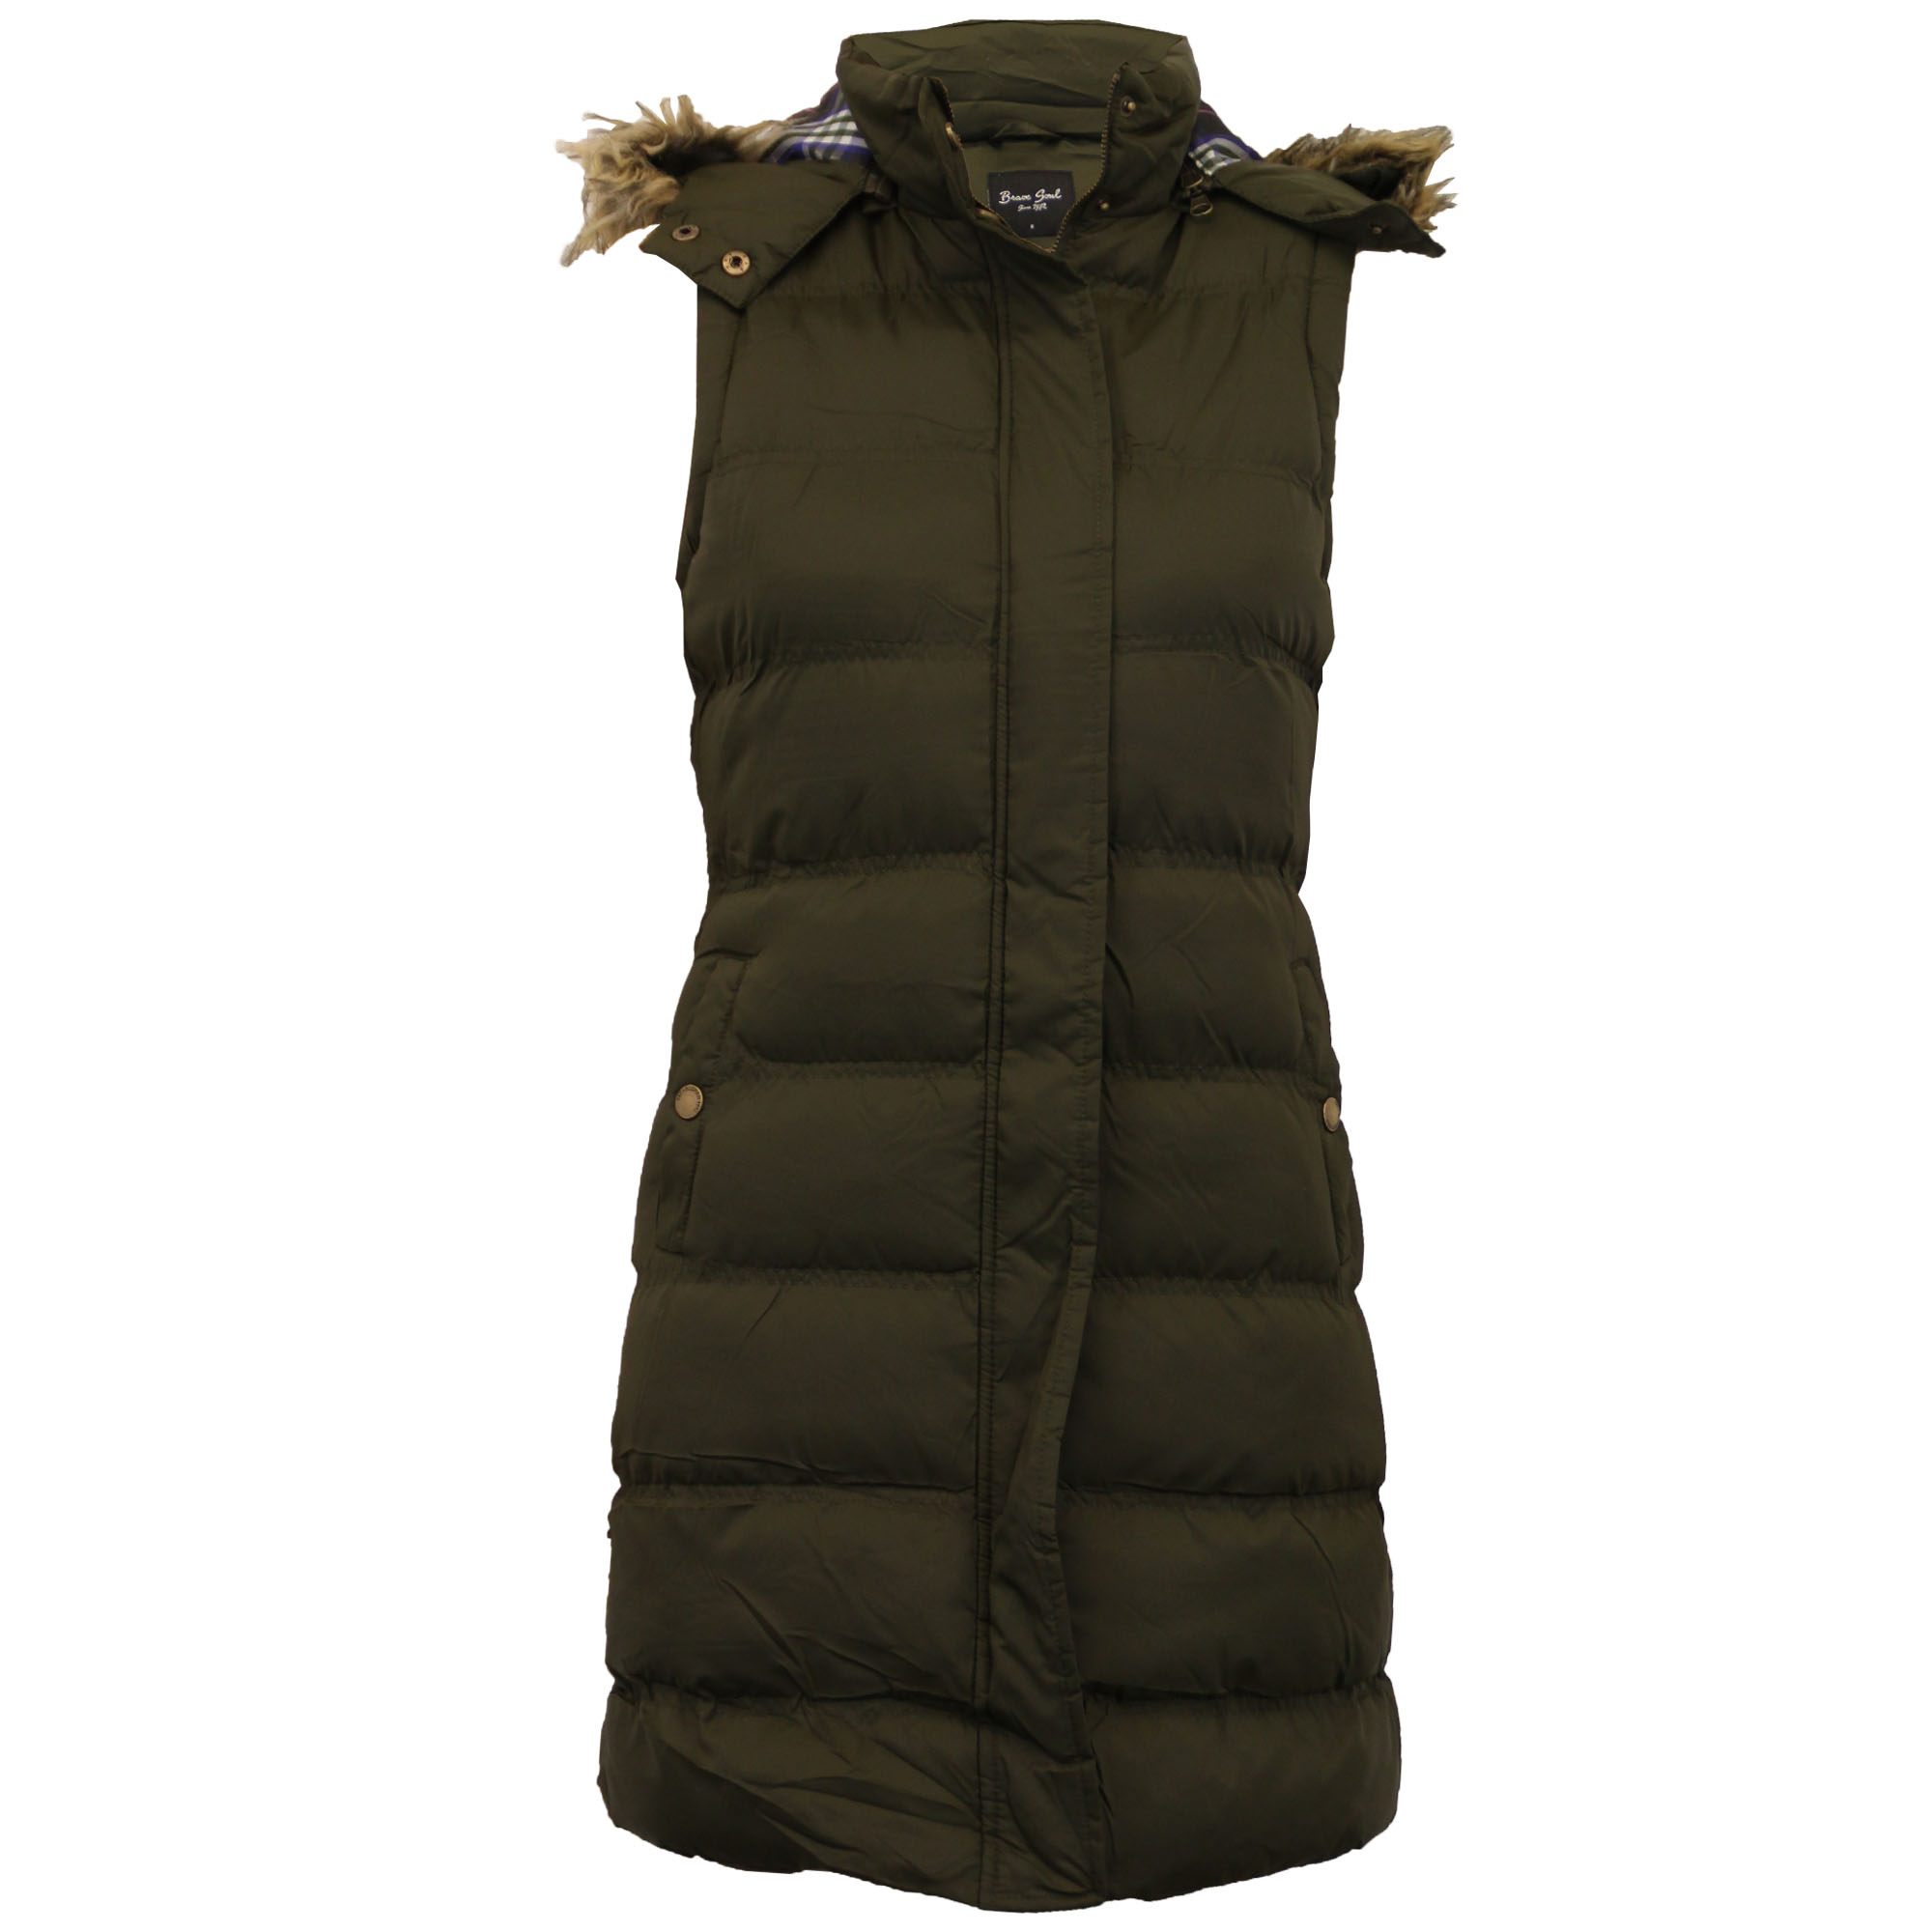 Buy Gilets from the Sale department at Debenhams. You'll find the widest range of Gilets products online and delivered to your door. Shop today!